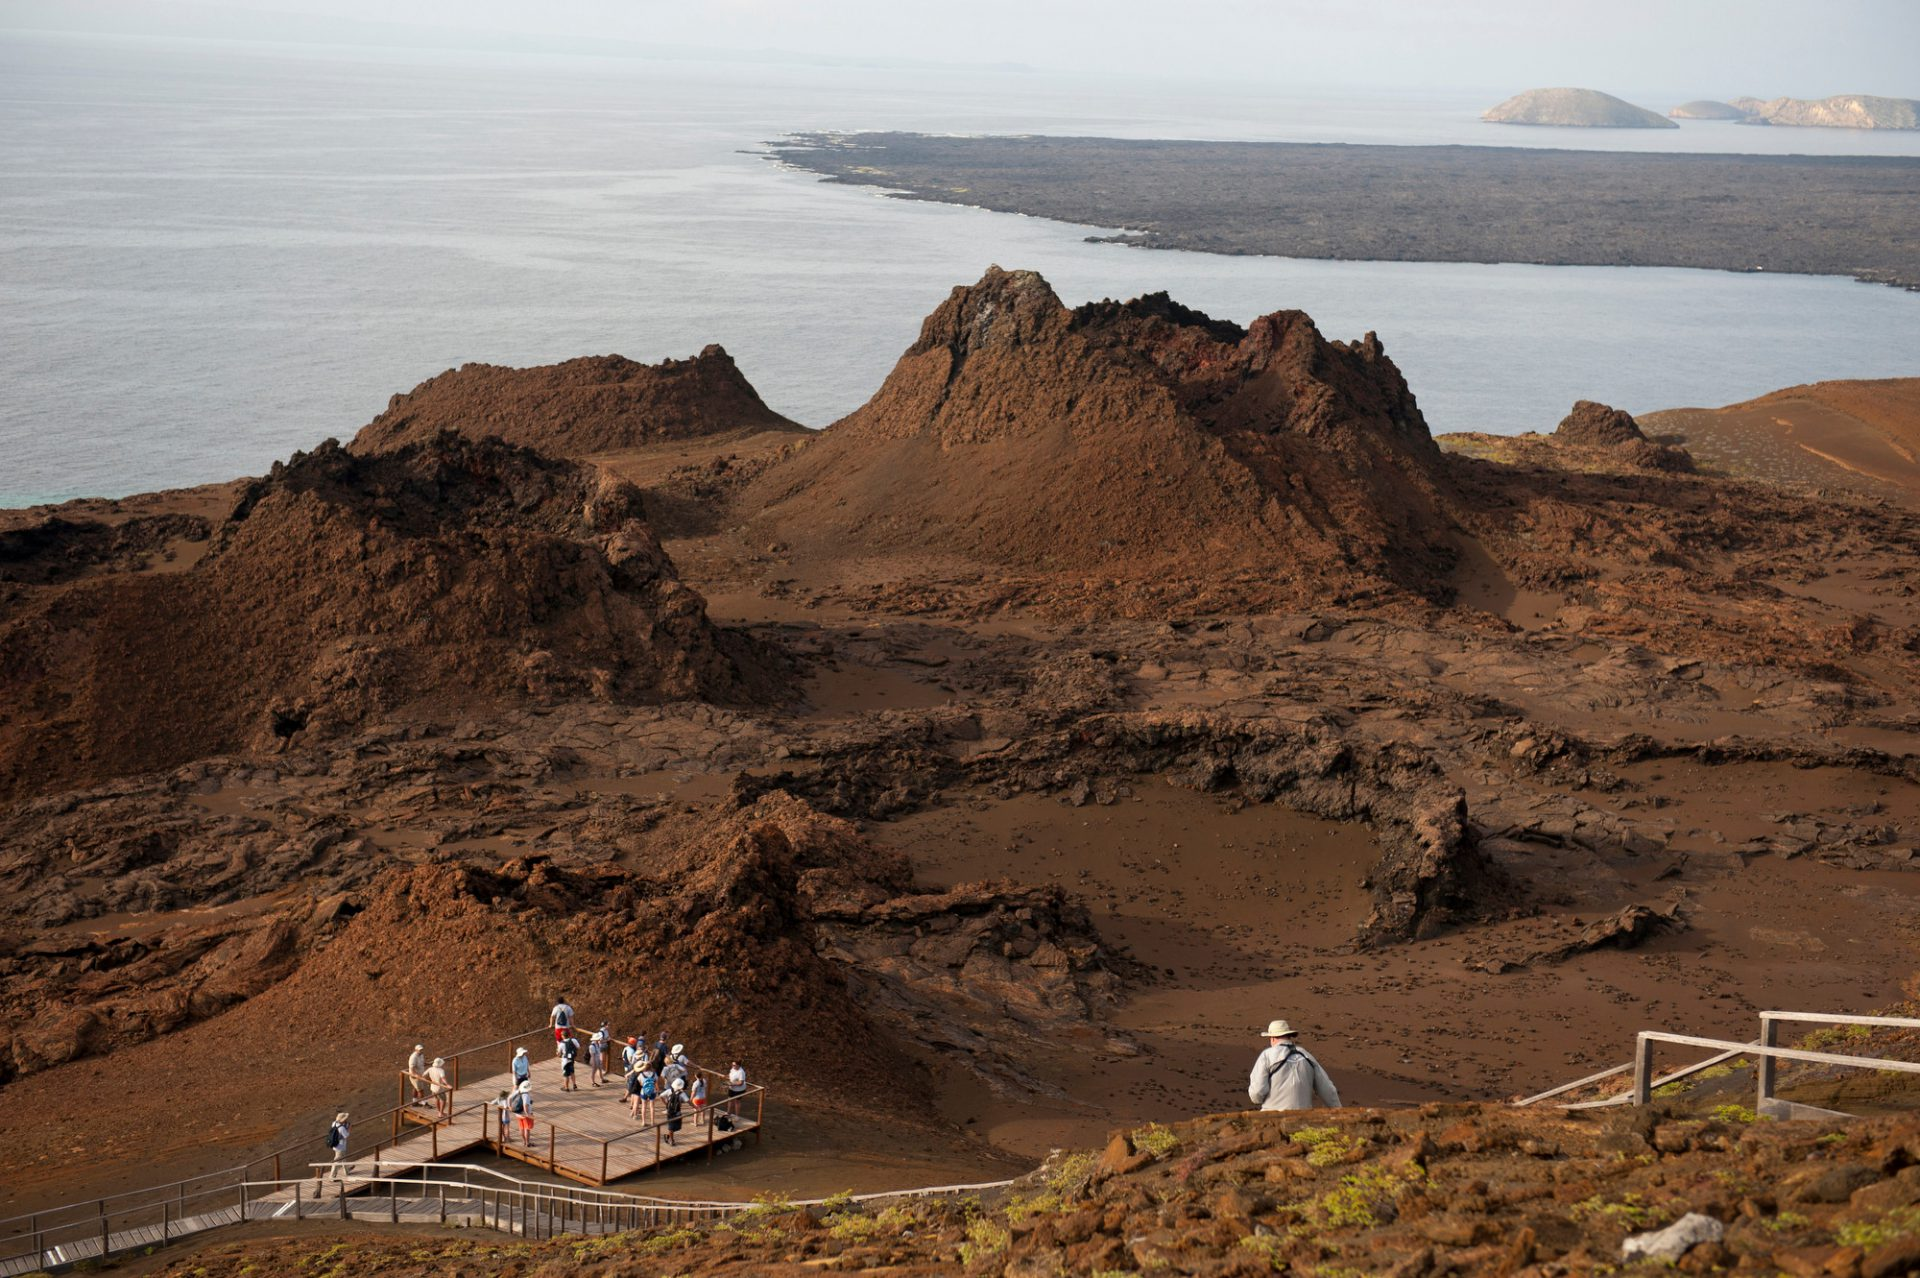 Photo: Tourists explore Bartholomew Island, part of Galapagos National Park.